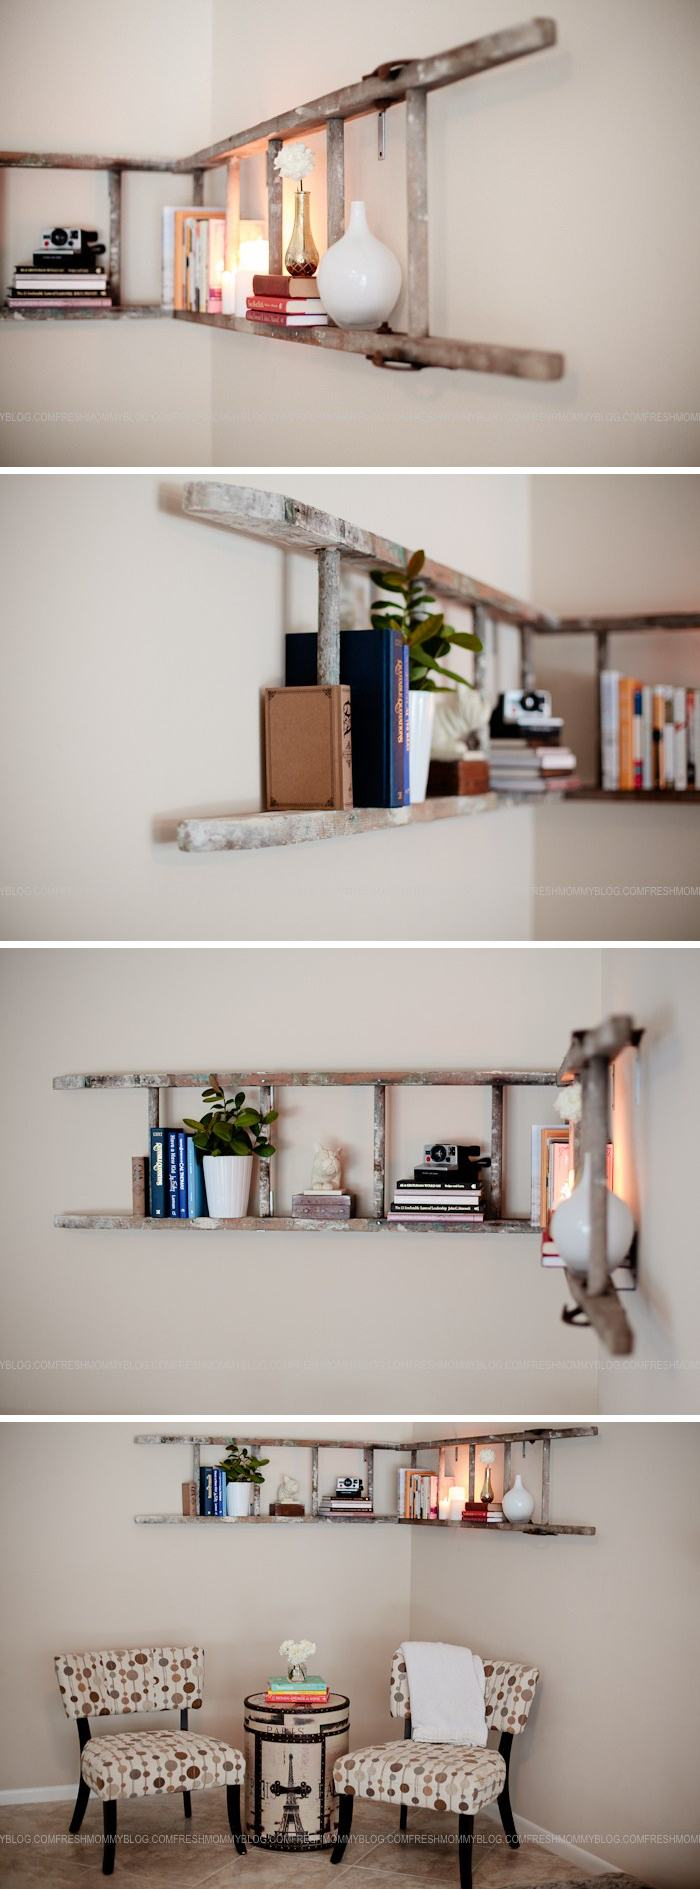 DIY Corner Ladder Bookshelf